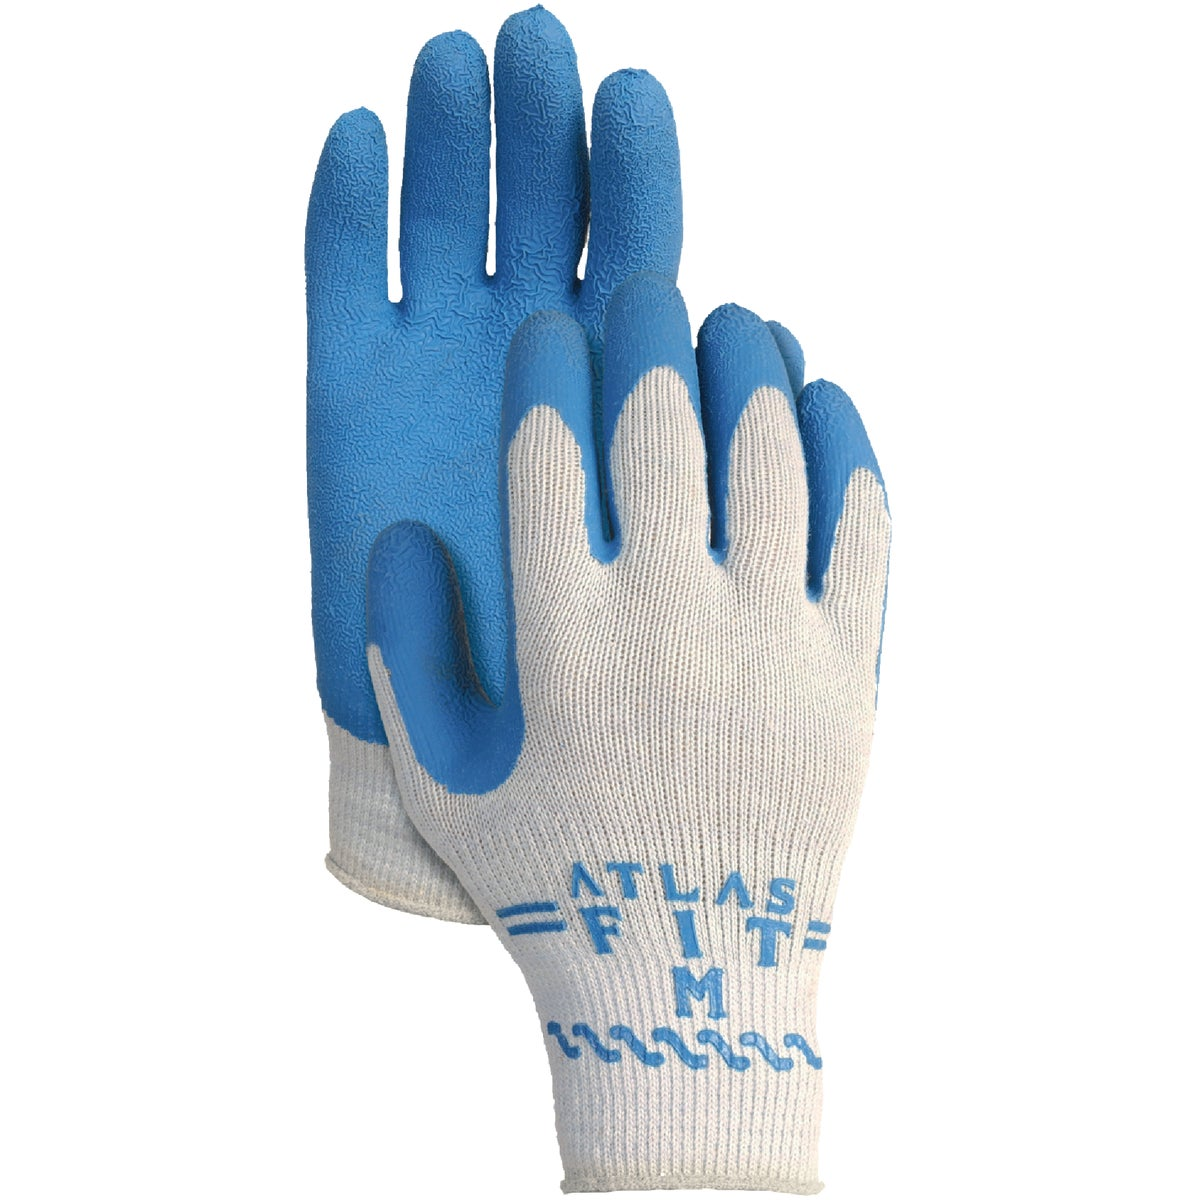 LRG PALM DIPPED GLOVE - 300L-09.RT by Showa Best Glove